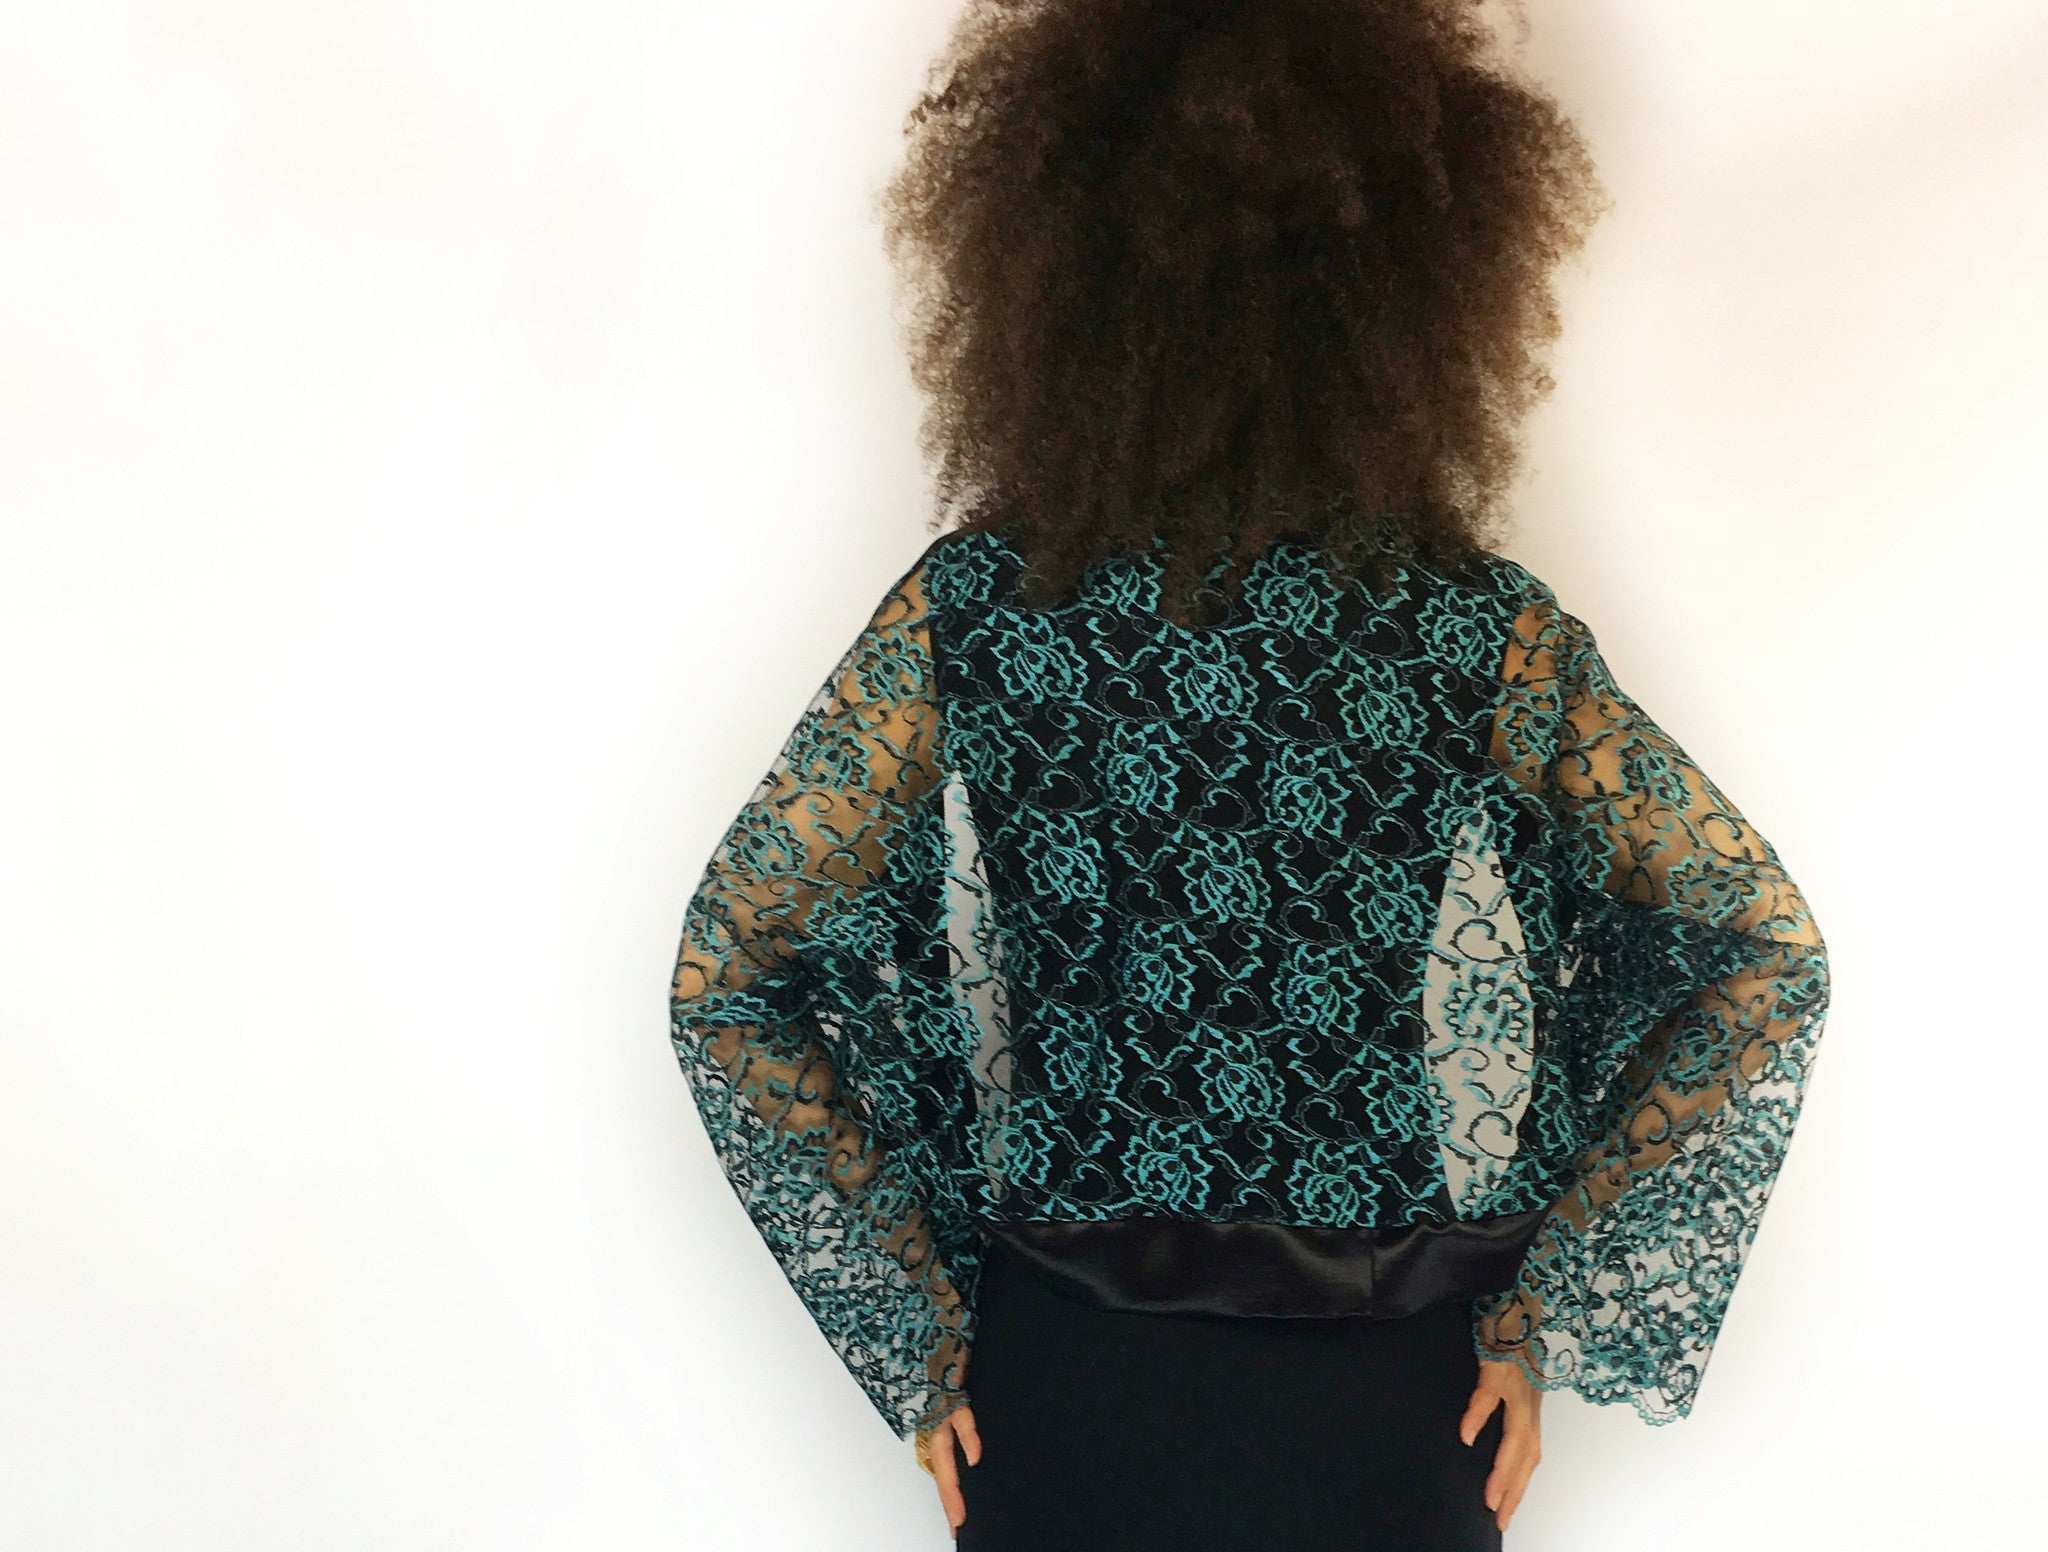 InstaGlam Shrug in Hemp Silk and Teal Lace